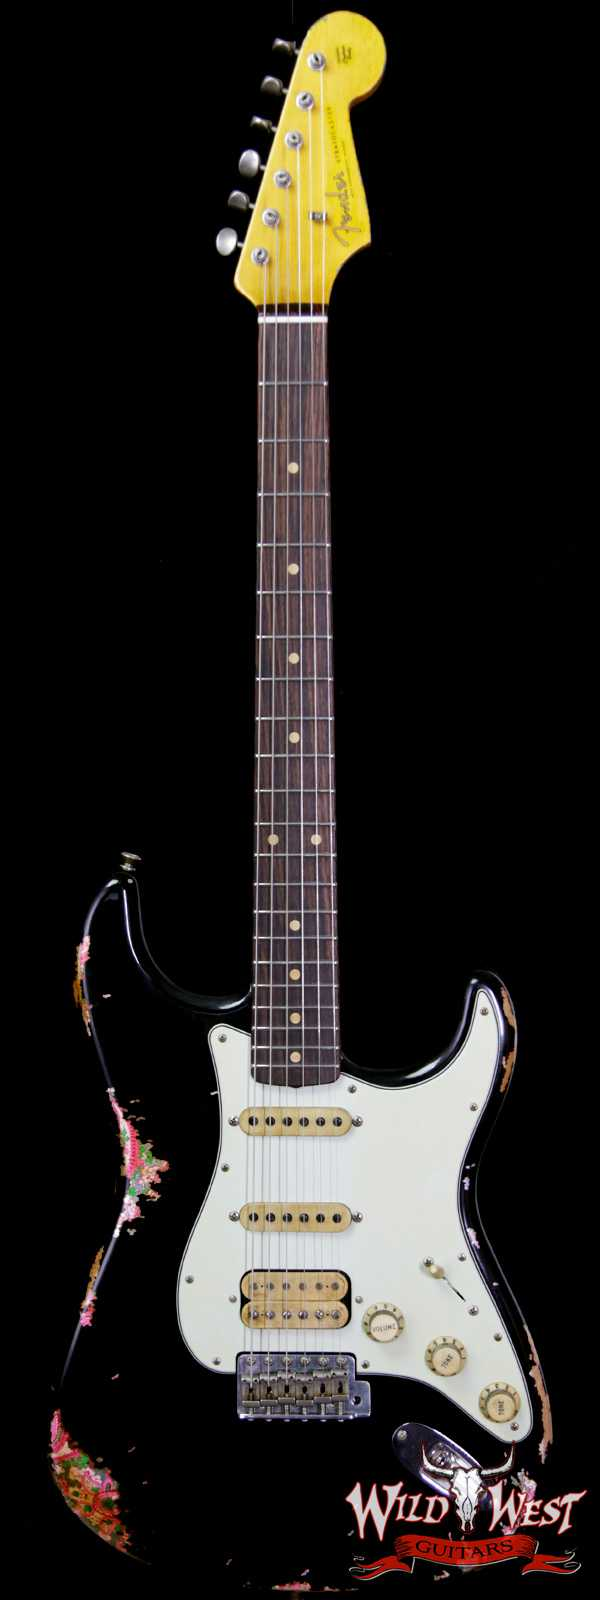 Fender Custom Shop Black Lightning 2.0 Stratocaster Heavy Relic HSS 21 Frets Rosewood Board Pink Paisley